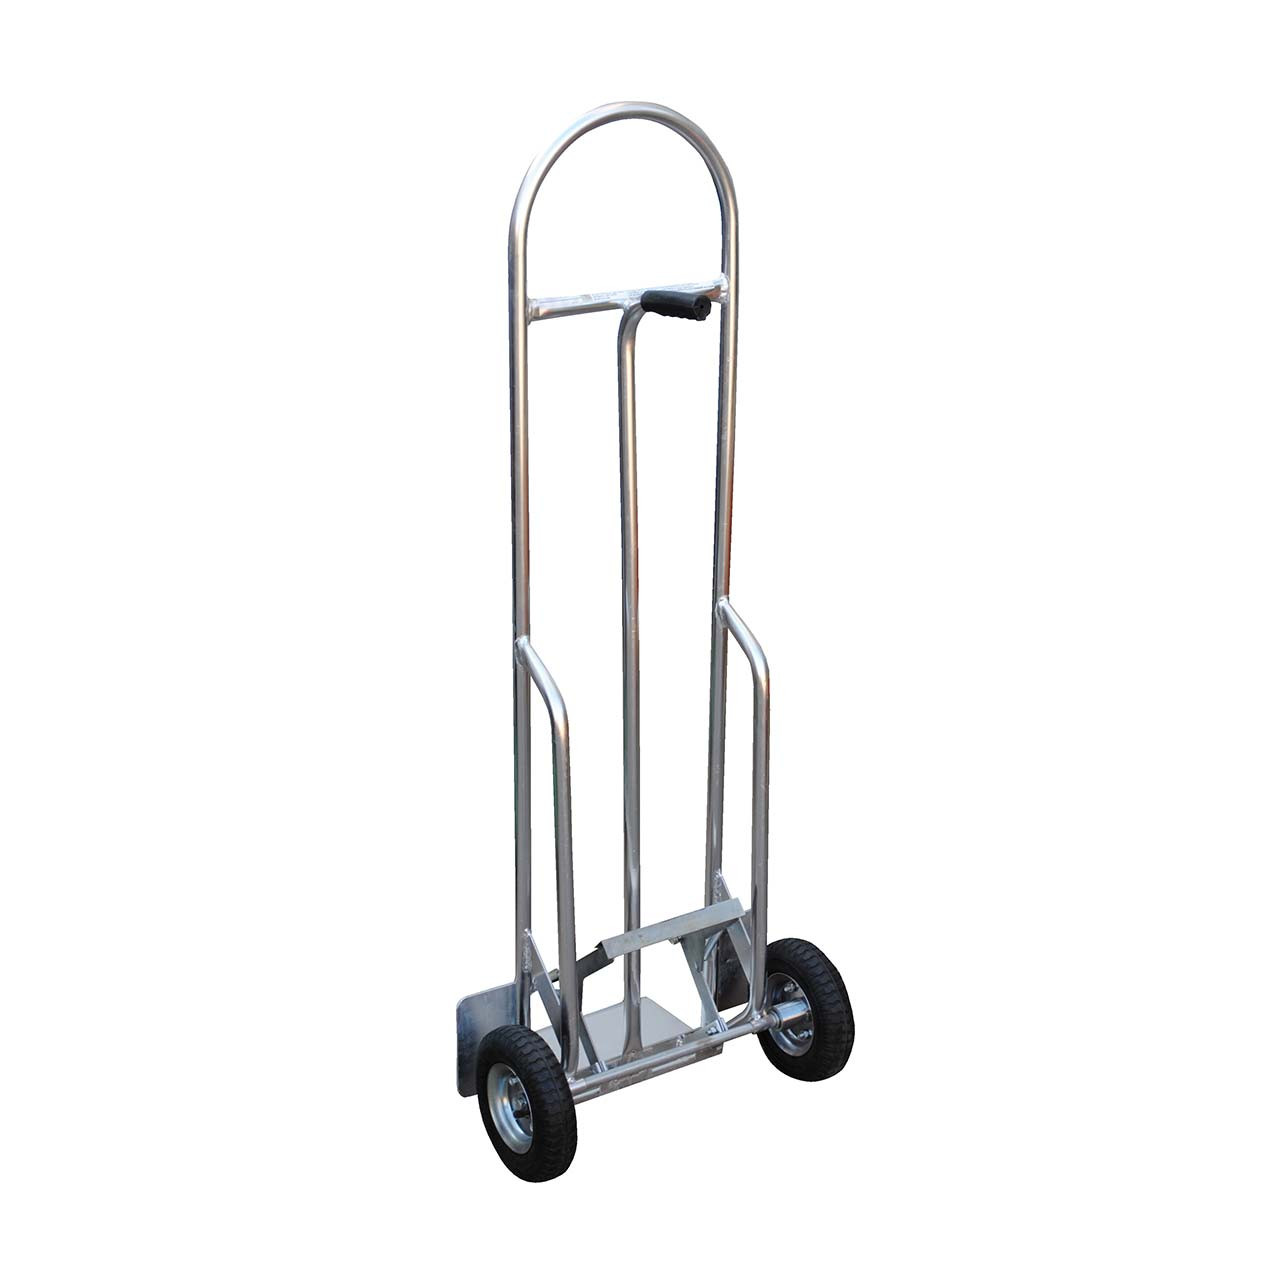 Back view of the high back aluminum hand truck